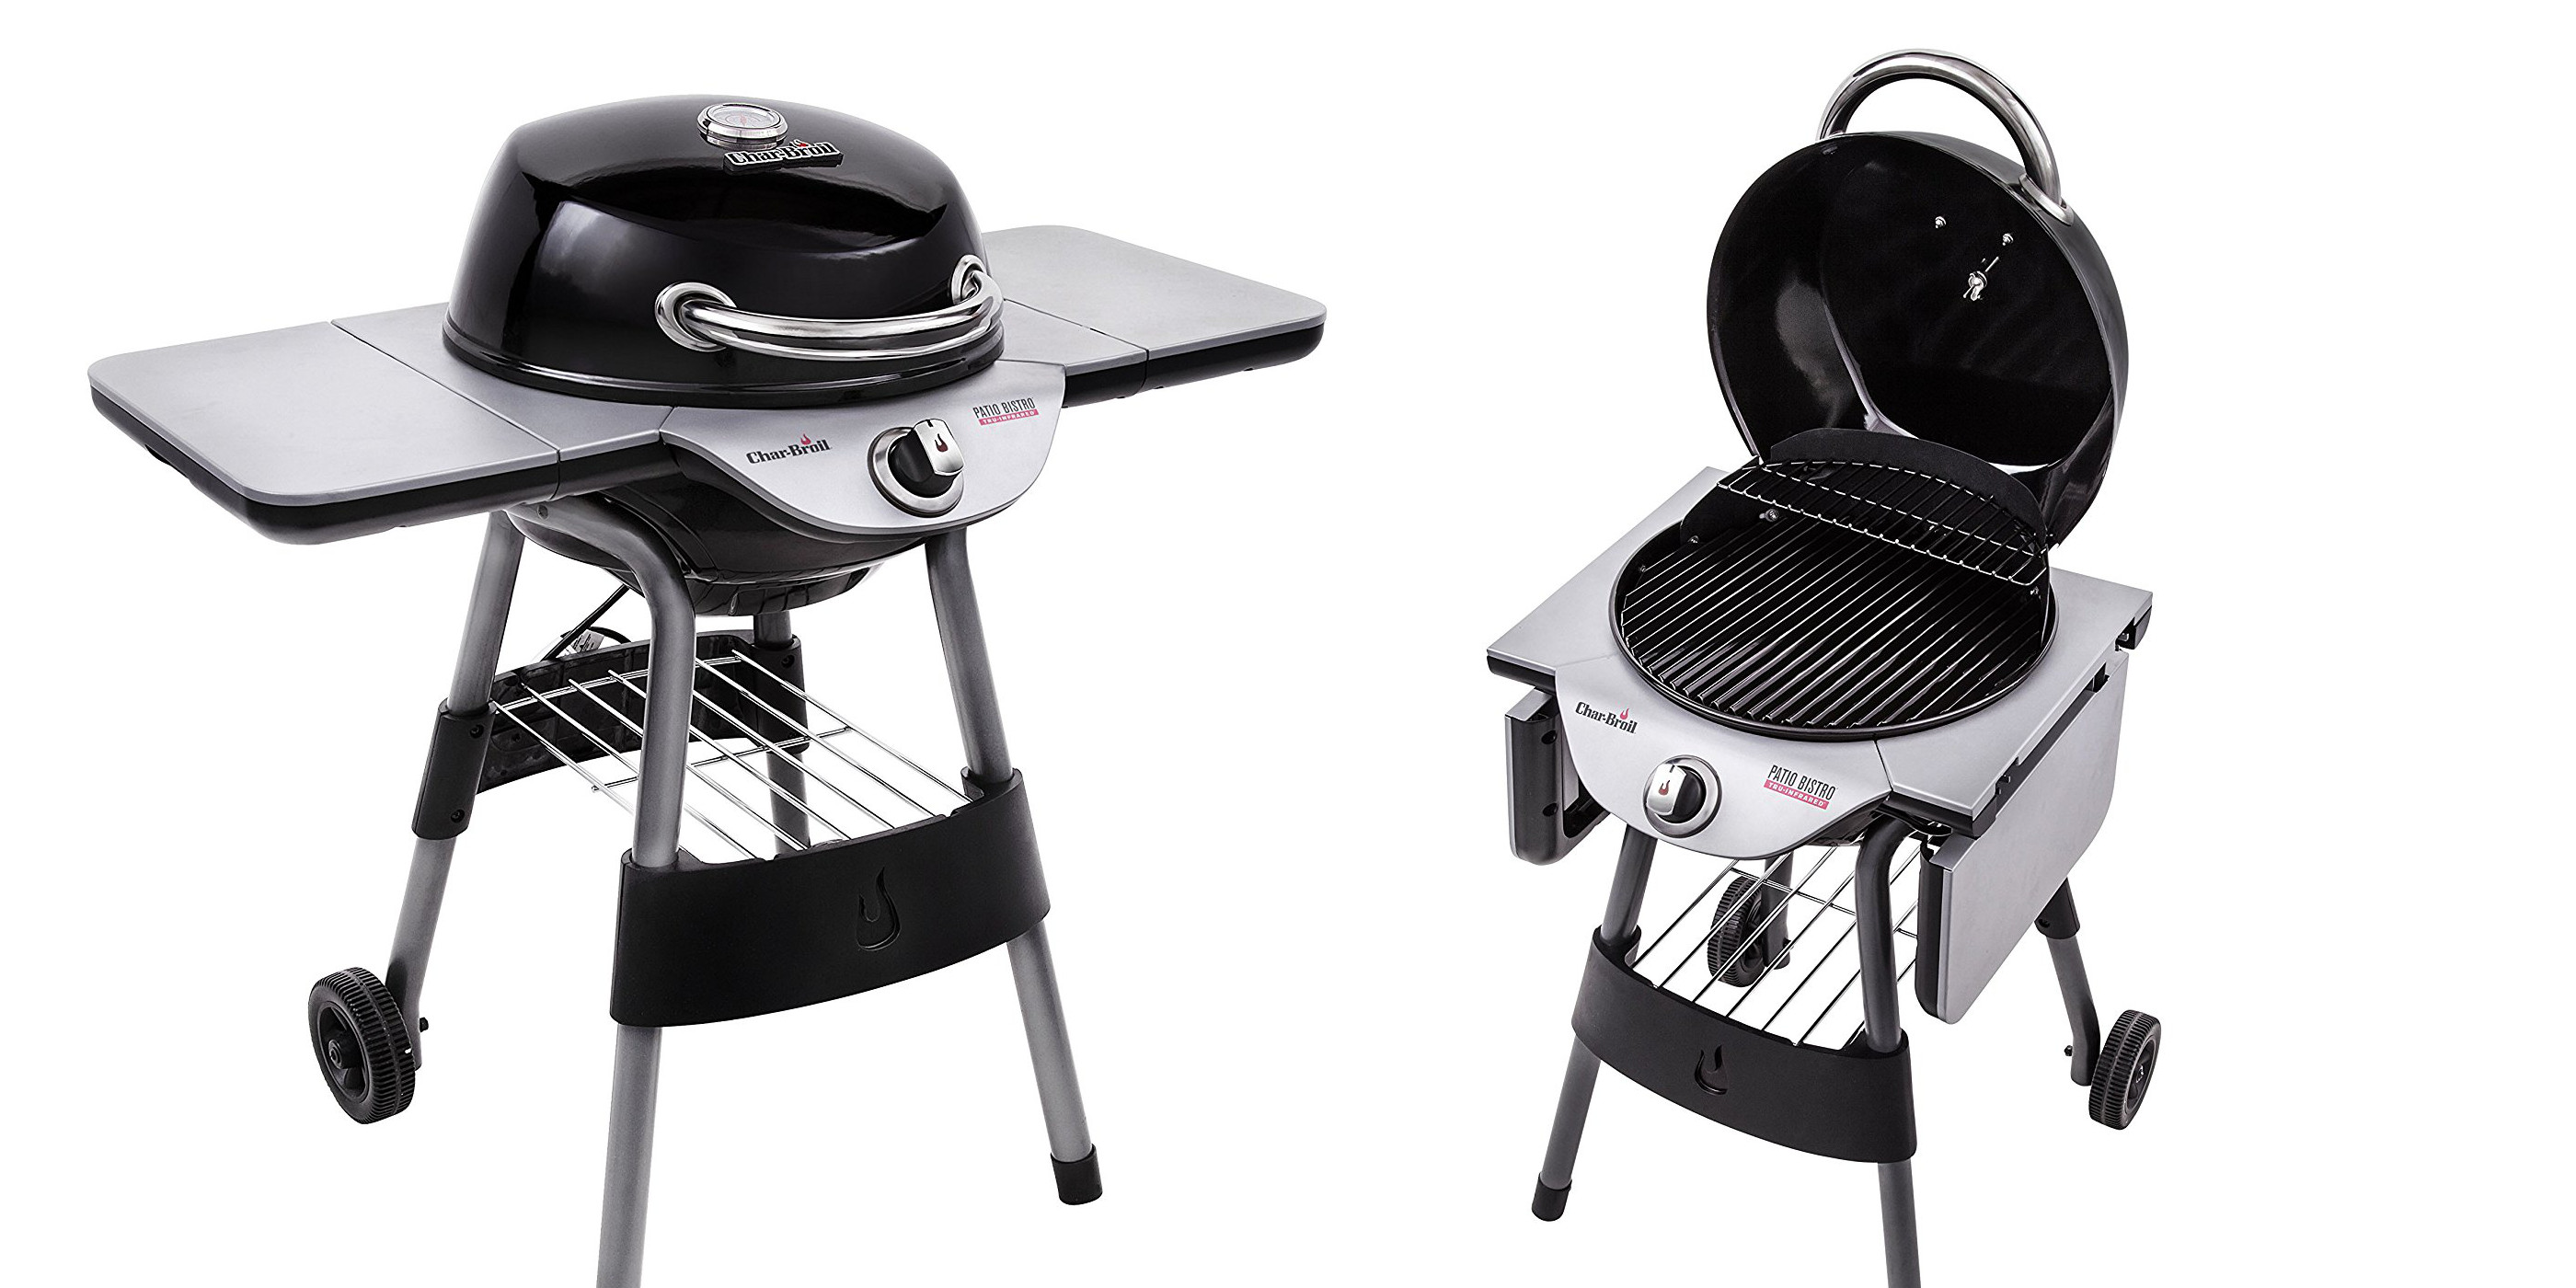 Char Broil Electric Patio Grill Hits Amazon All Time Low At $148 Shipped